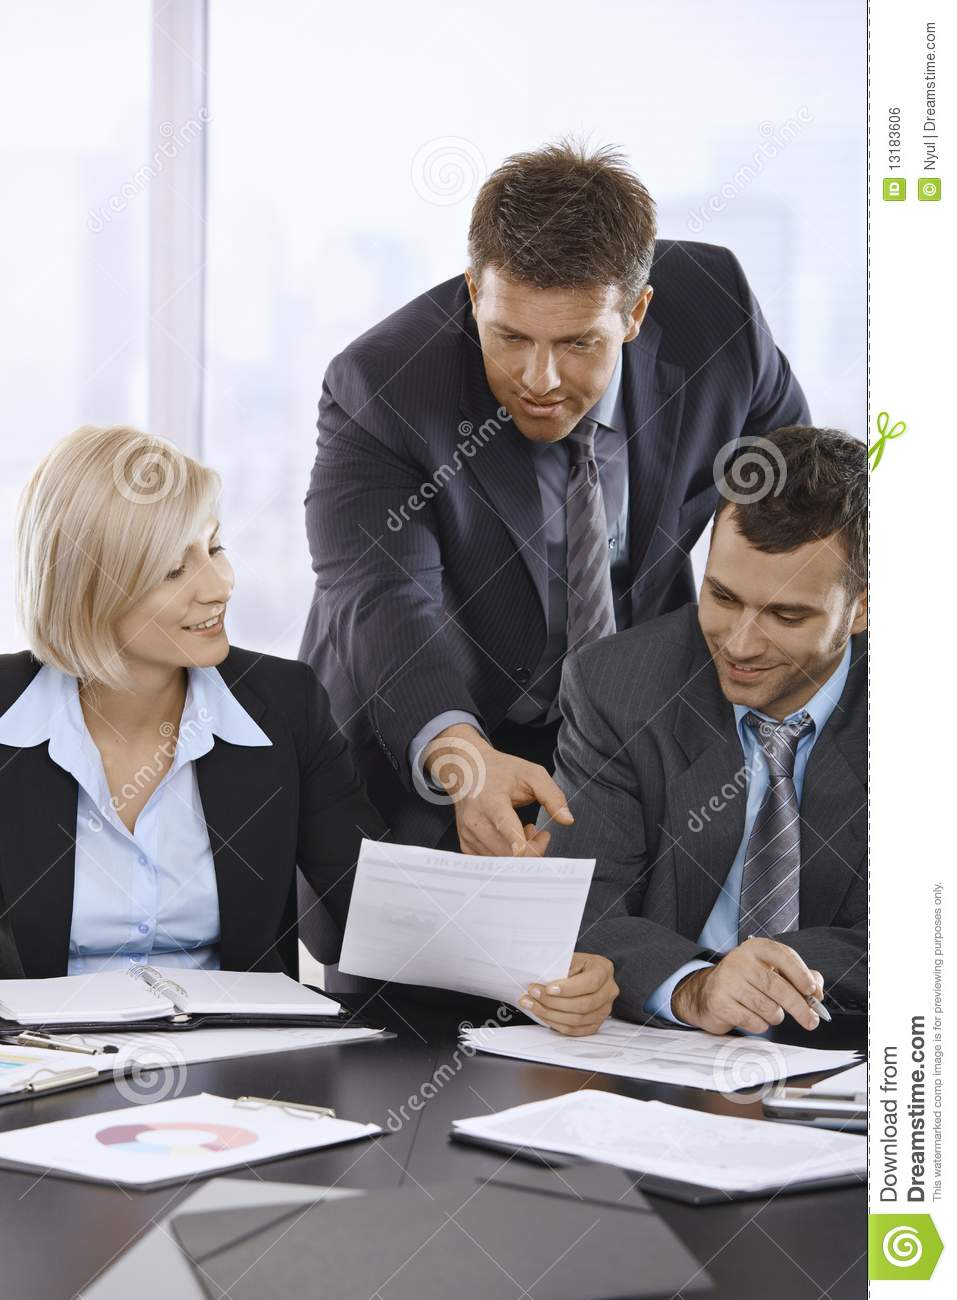 Business People Reviewing Documents Royalty Free Stock